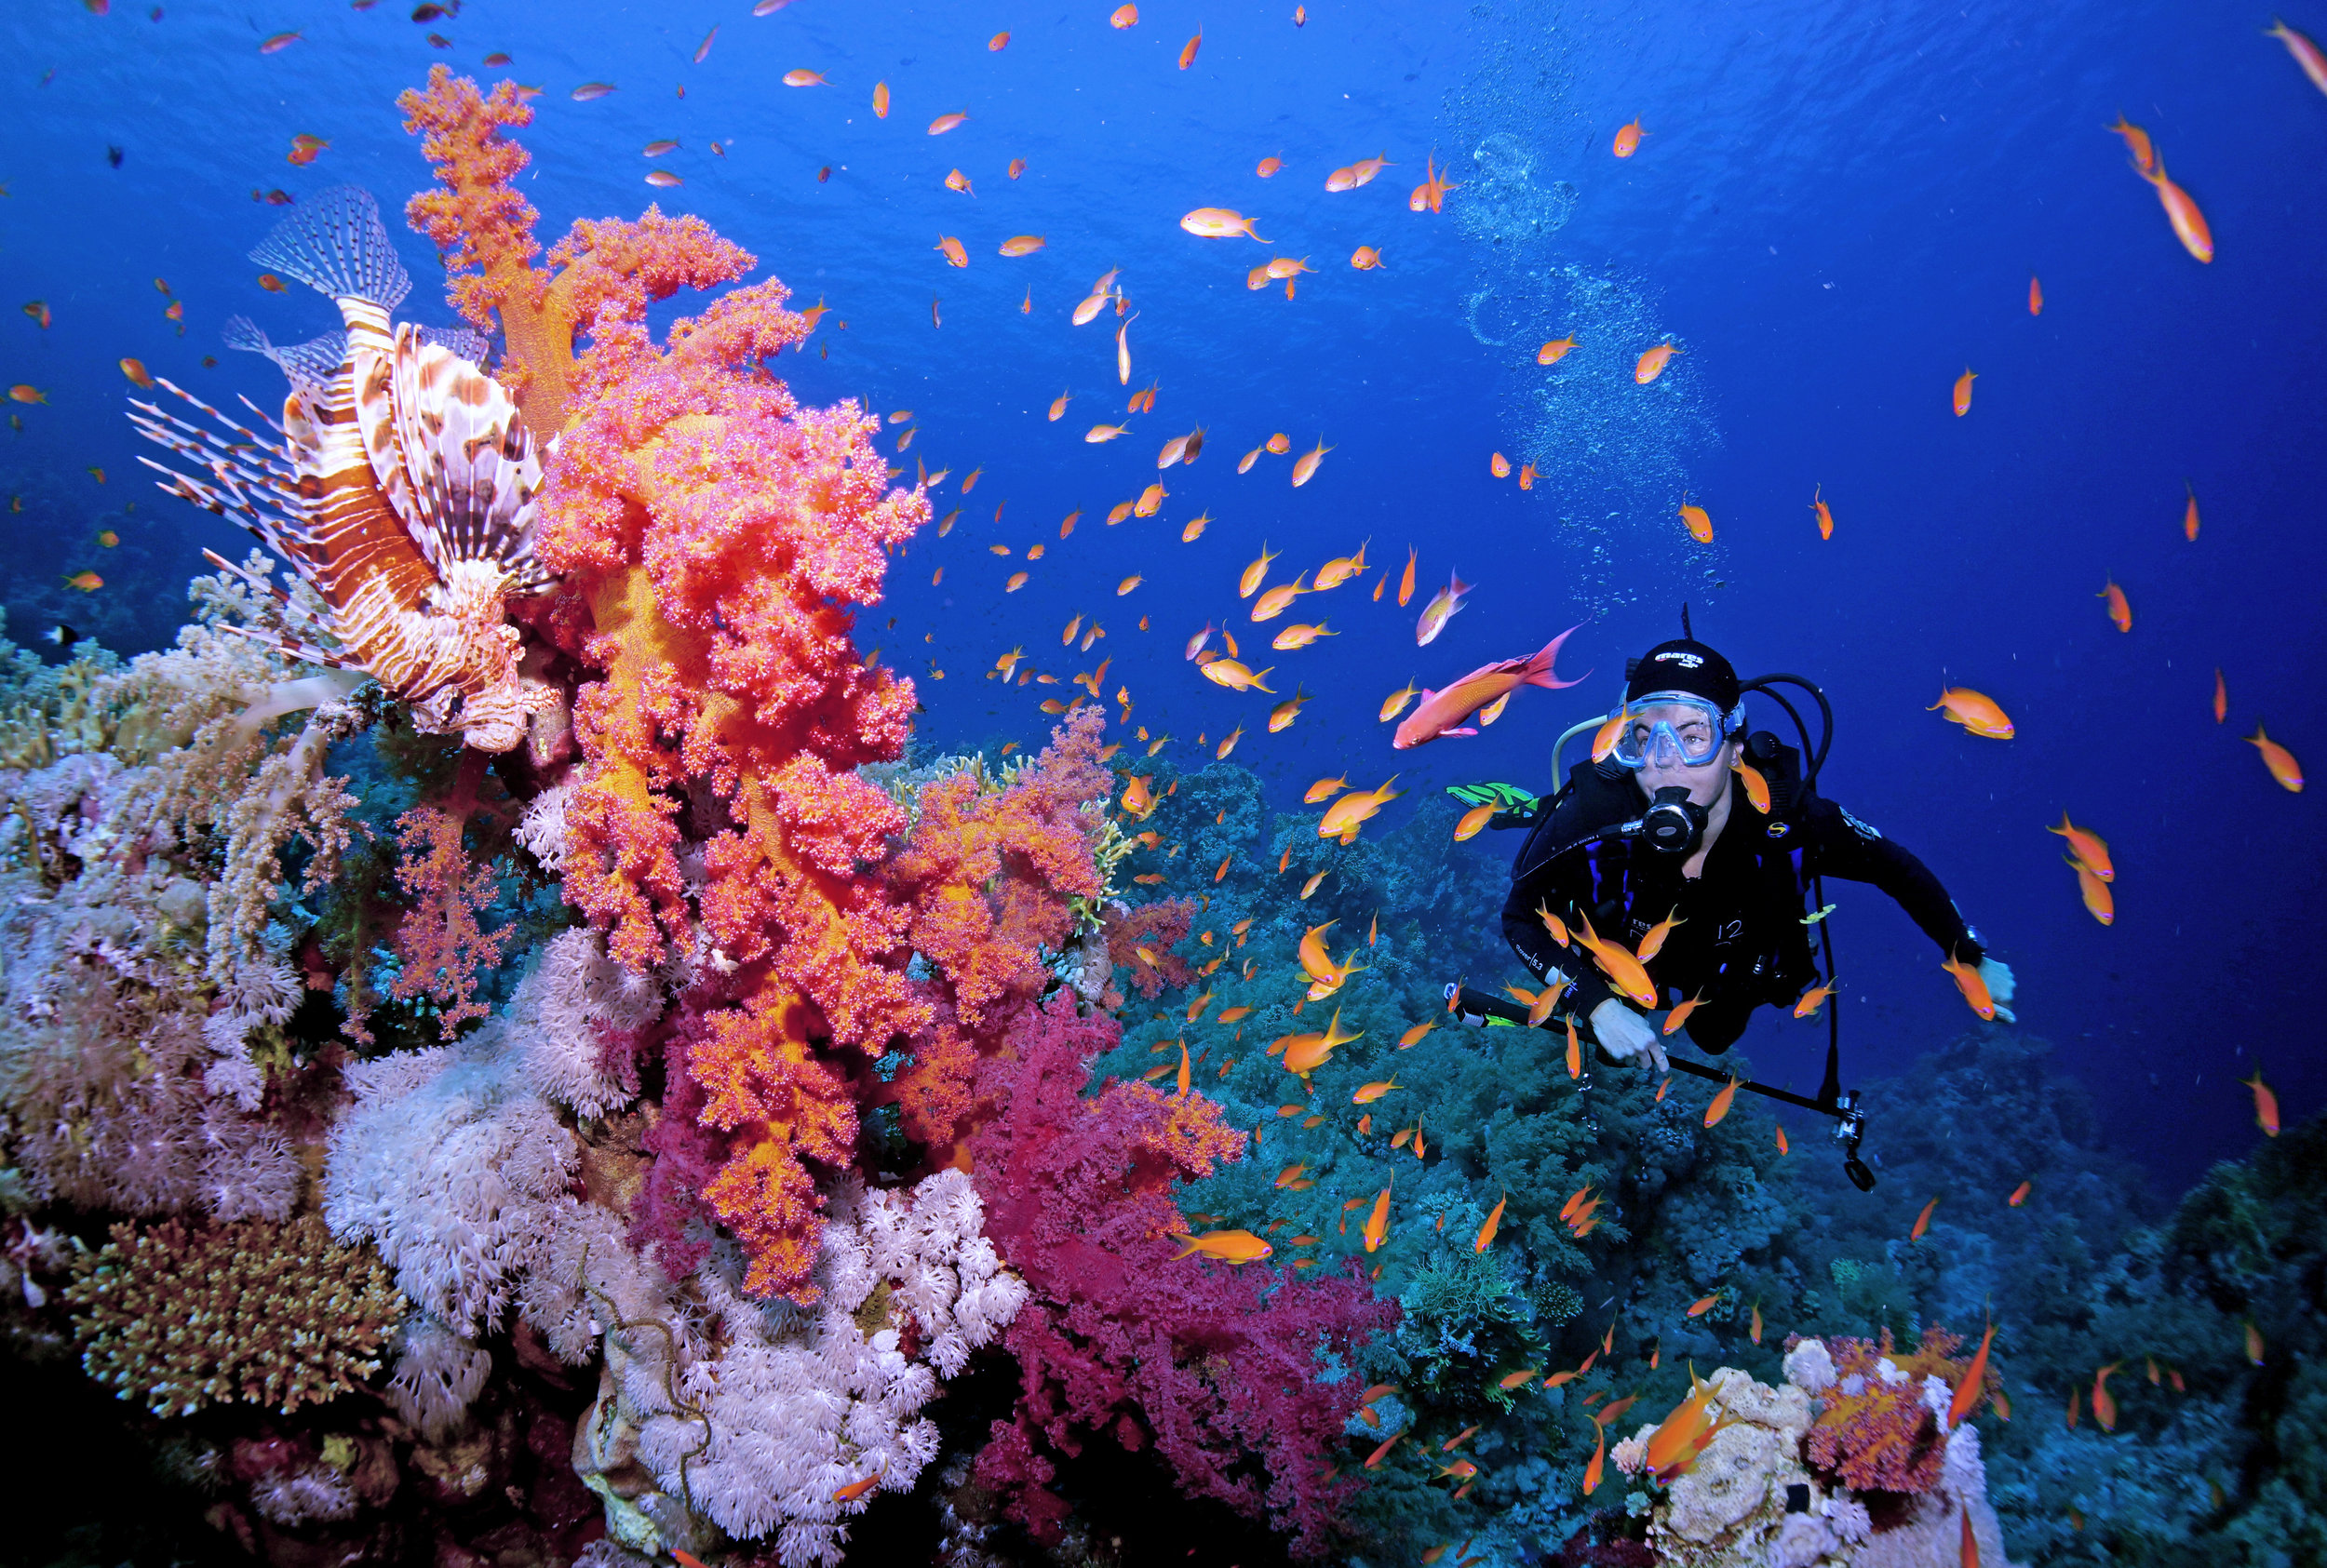 07 - A DIVER ON A REEF in THE red sea credit: CINZIA OSELE BISMARCK / coral reef image bank